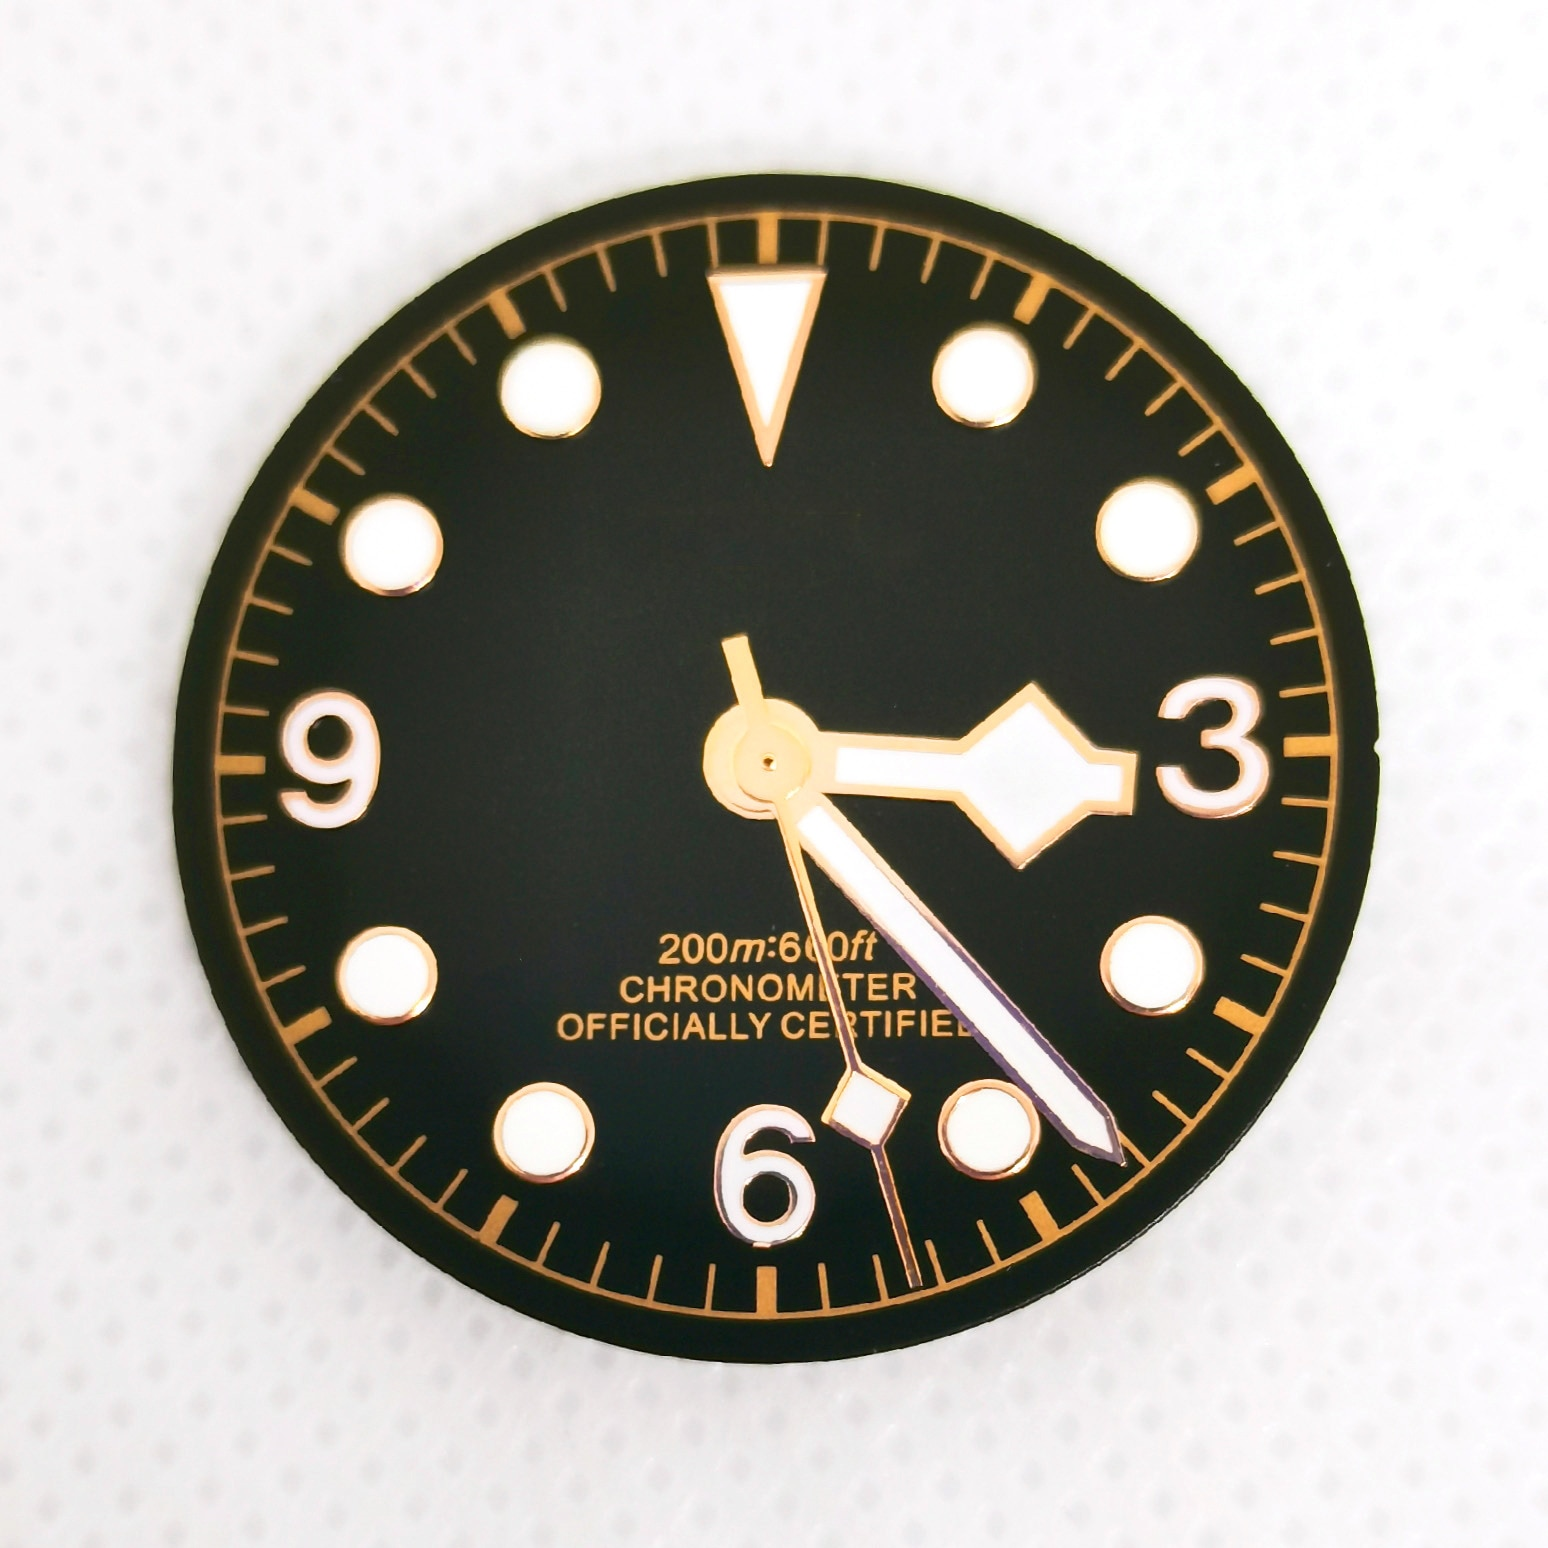 Watch Part Stainless Steel Brown Color Case Green night Light Dial And Hands Fit Automatic Movement ETA2836/2824 Miota8215 enlarge